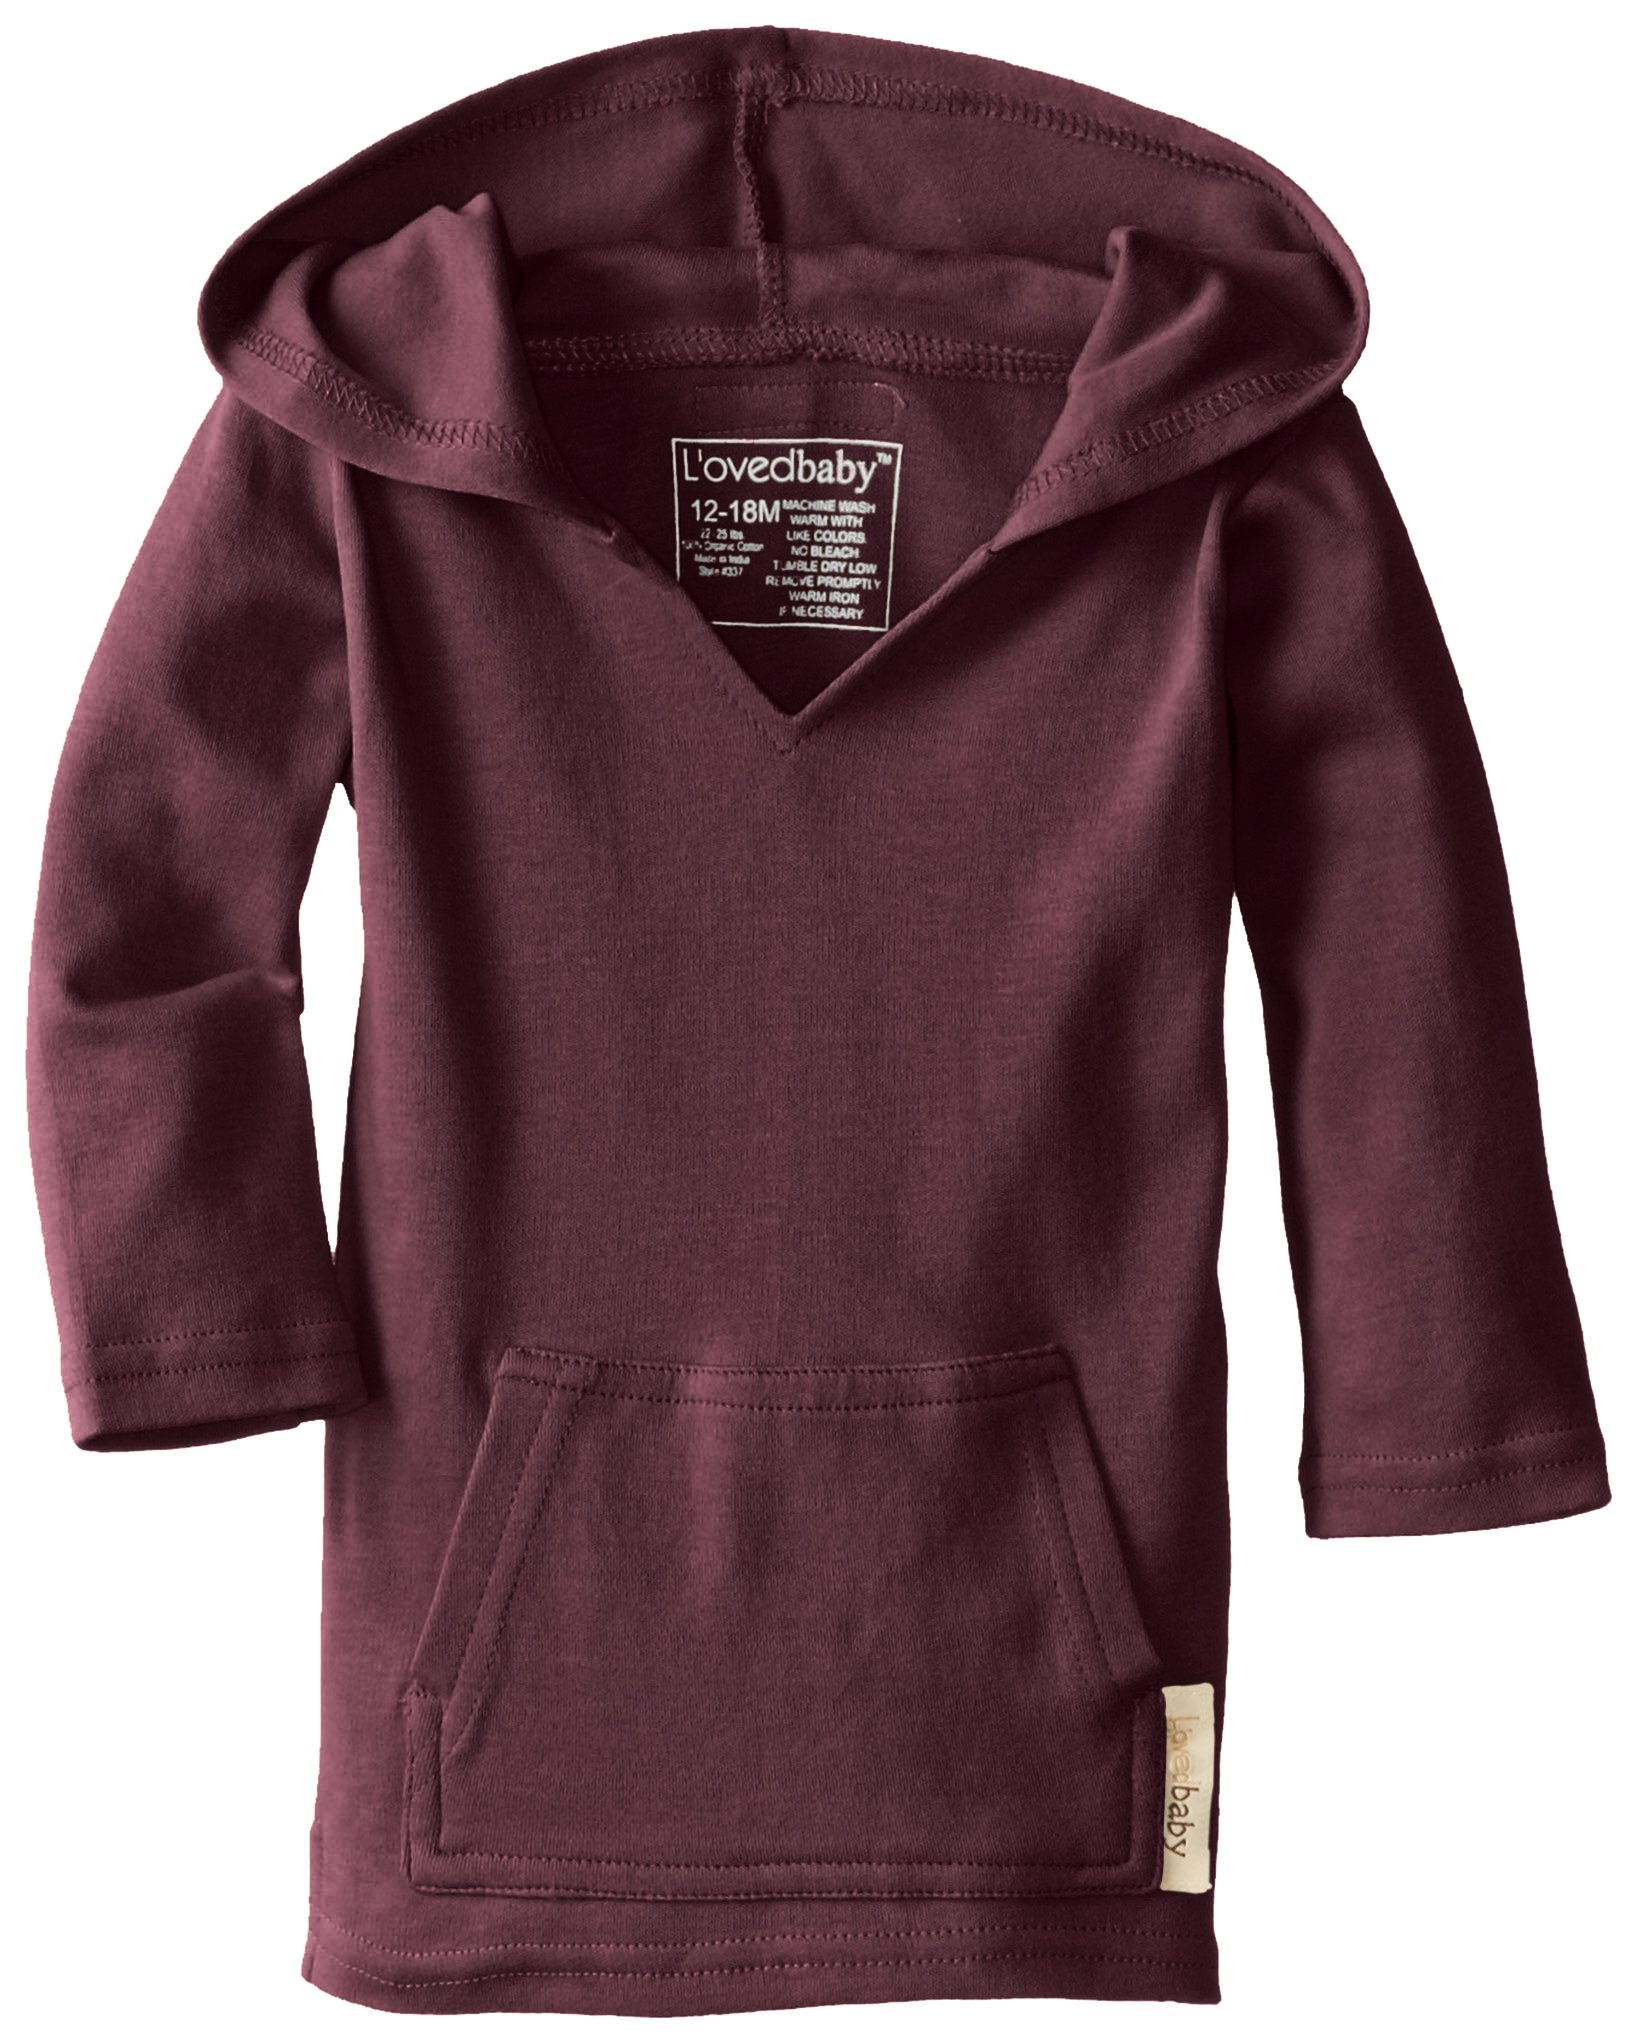 L'ovedbaby Unisex-Baby Newborn Organic Hoodie, Eggplant, 12/18 Months by L'ovedbaby (Image #2)